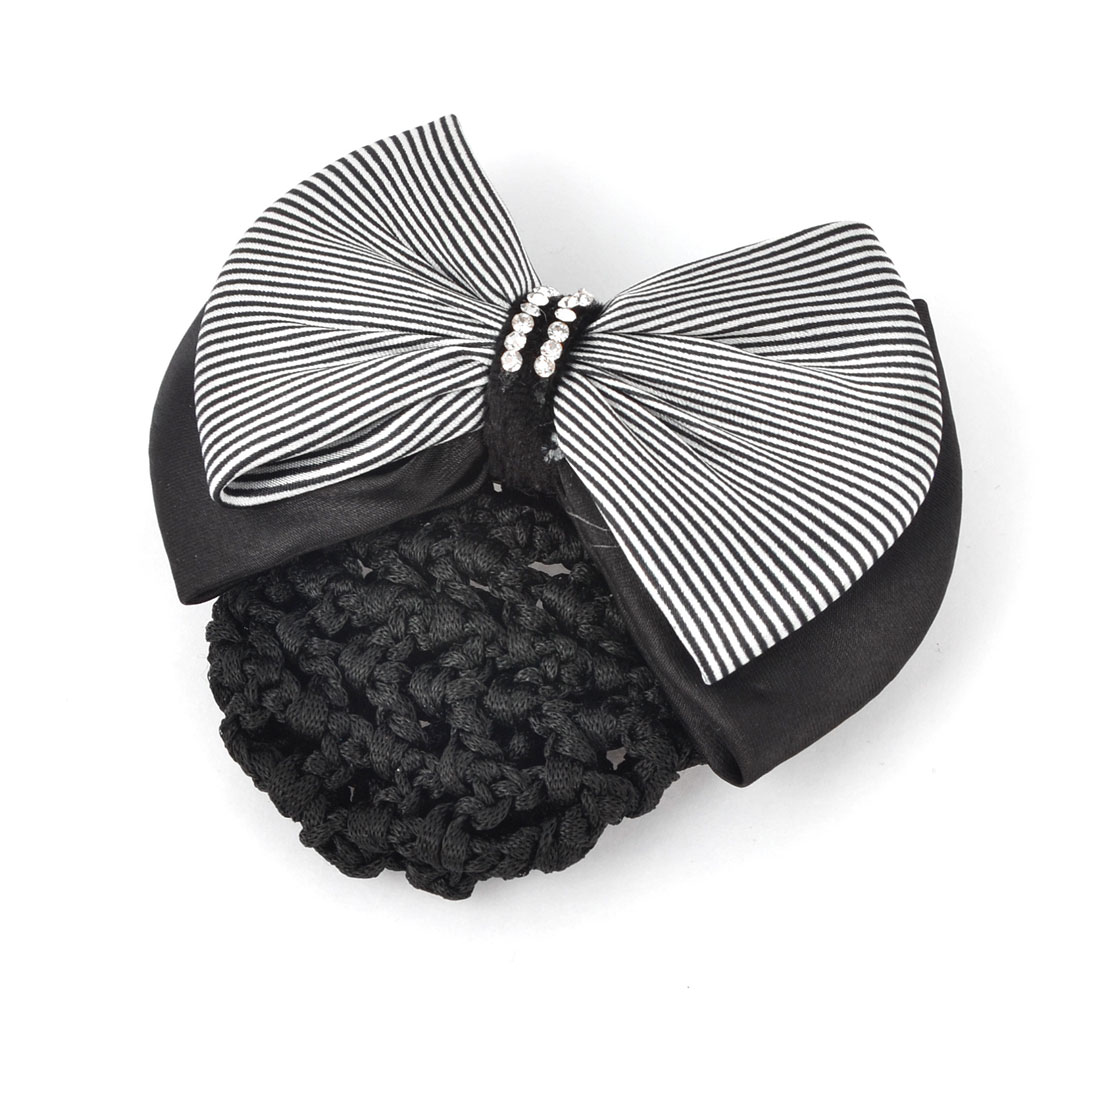 Black White Striped Polyester Bowknot Decor Glitter Rhinestones Inlaid Snood Net Barrette French Hair Clip Bun Cover for Ladies